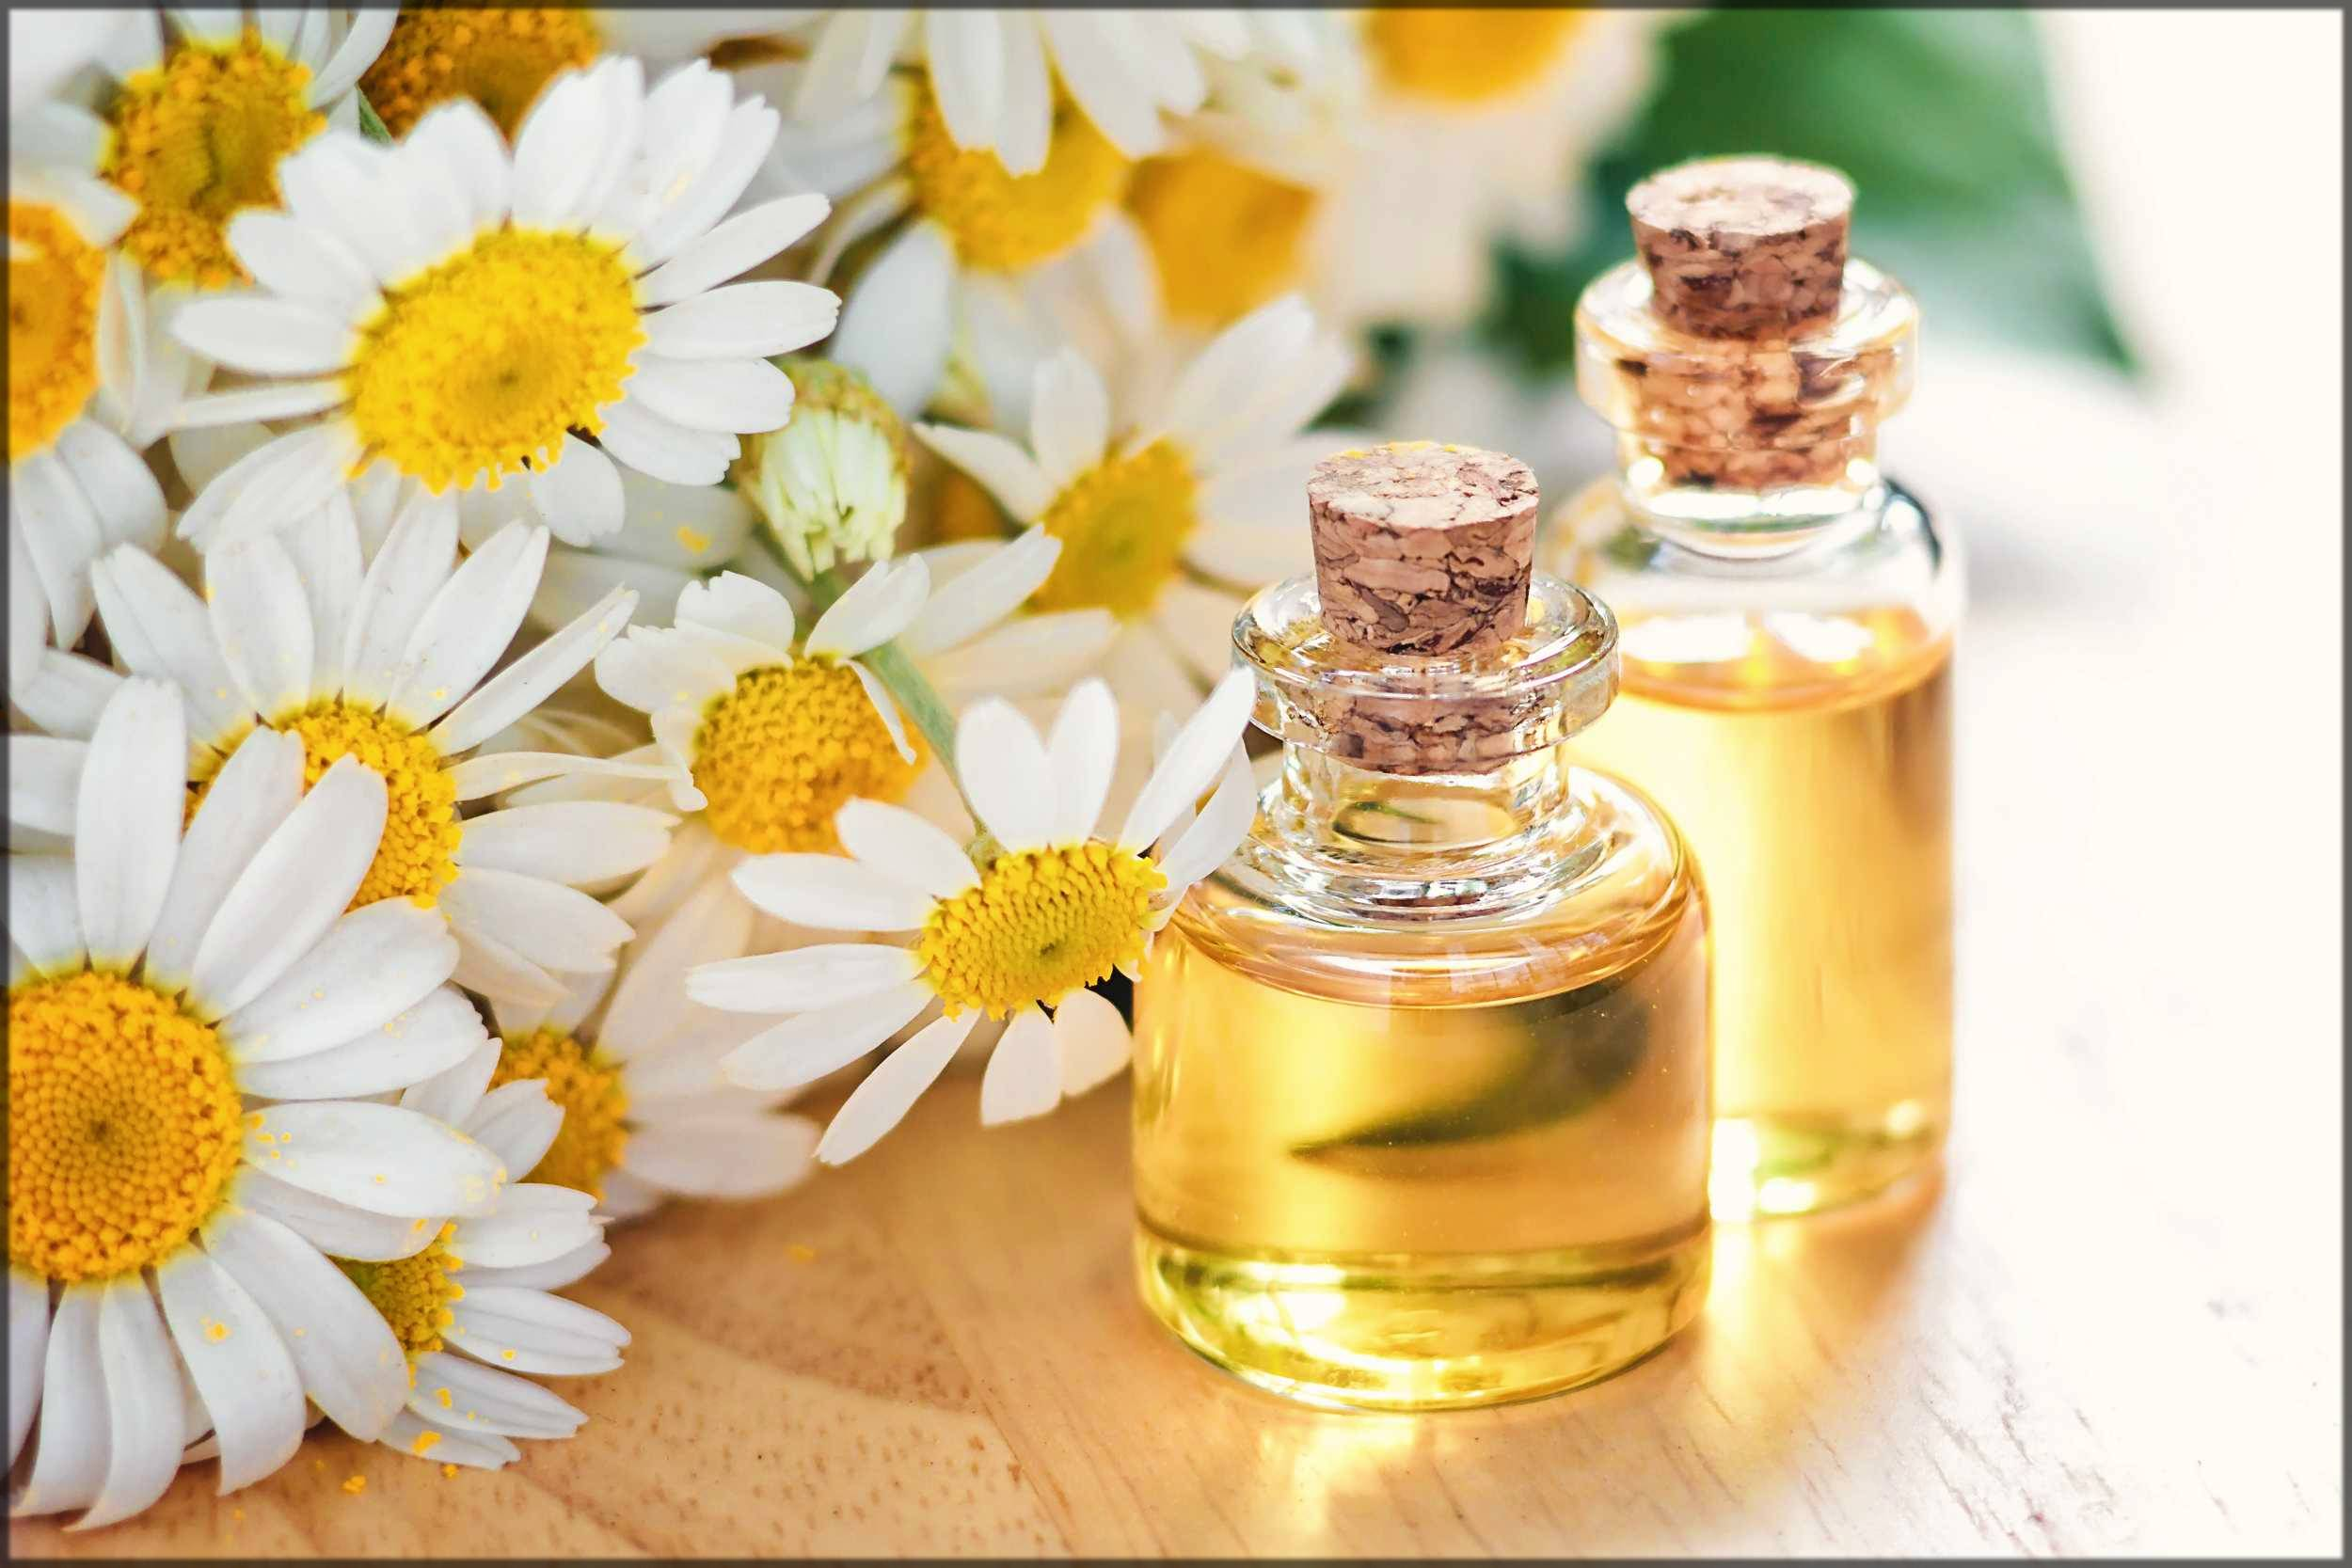 Top 10 Best Natural And Herbal Beauty Tips For Glowing Skin